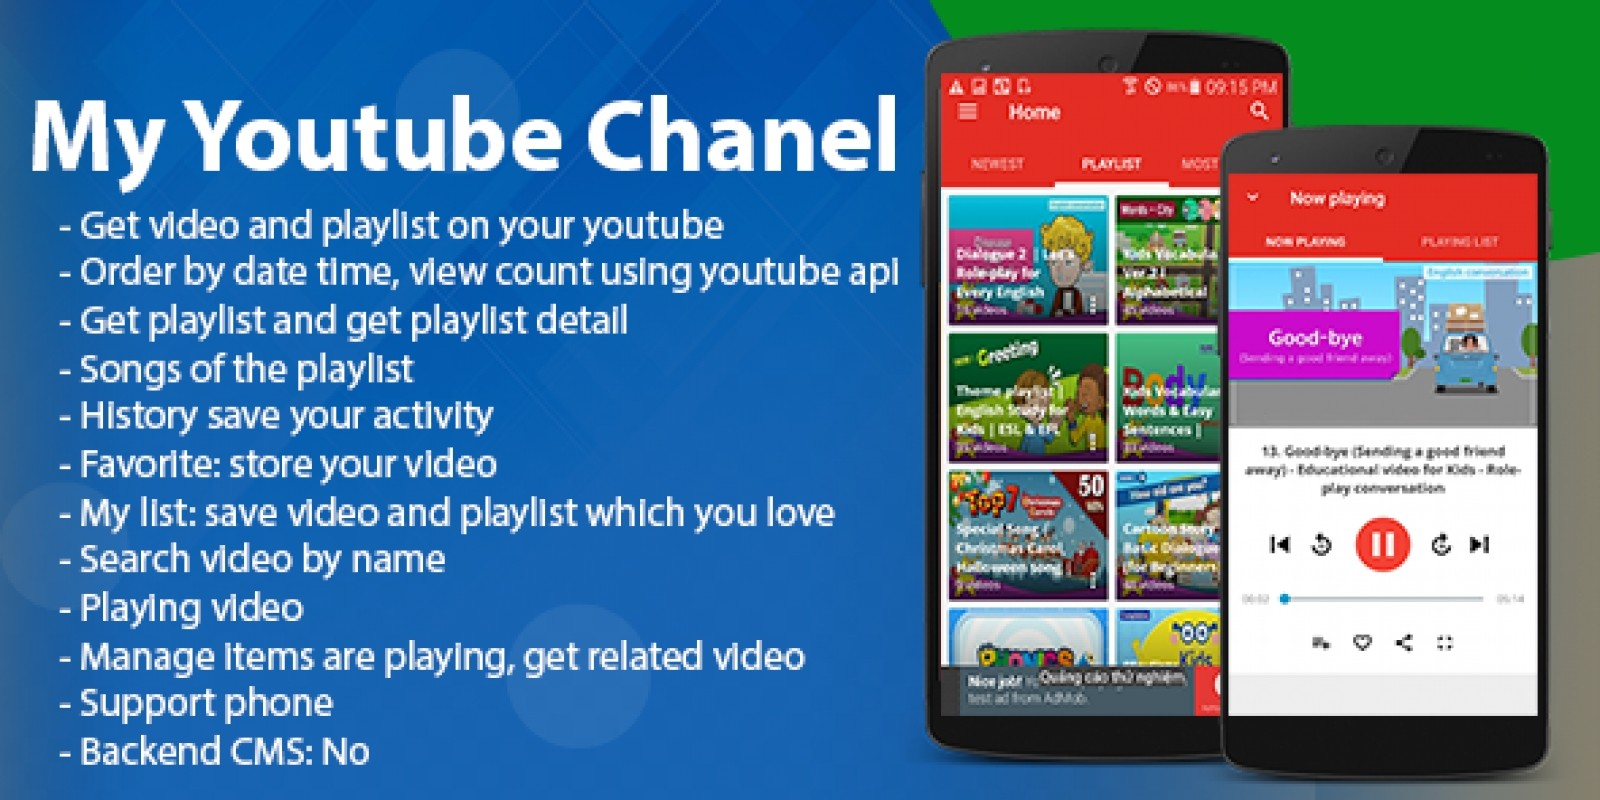 My Youtube Chanel - Android App Template